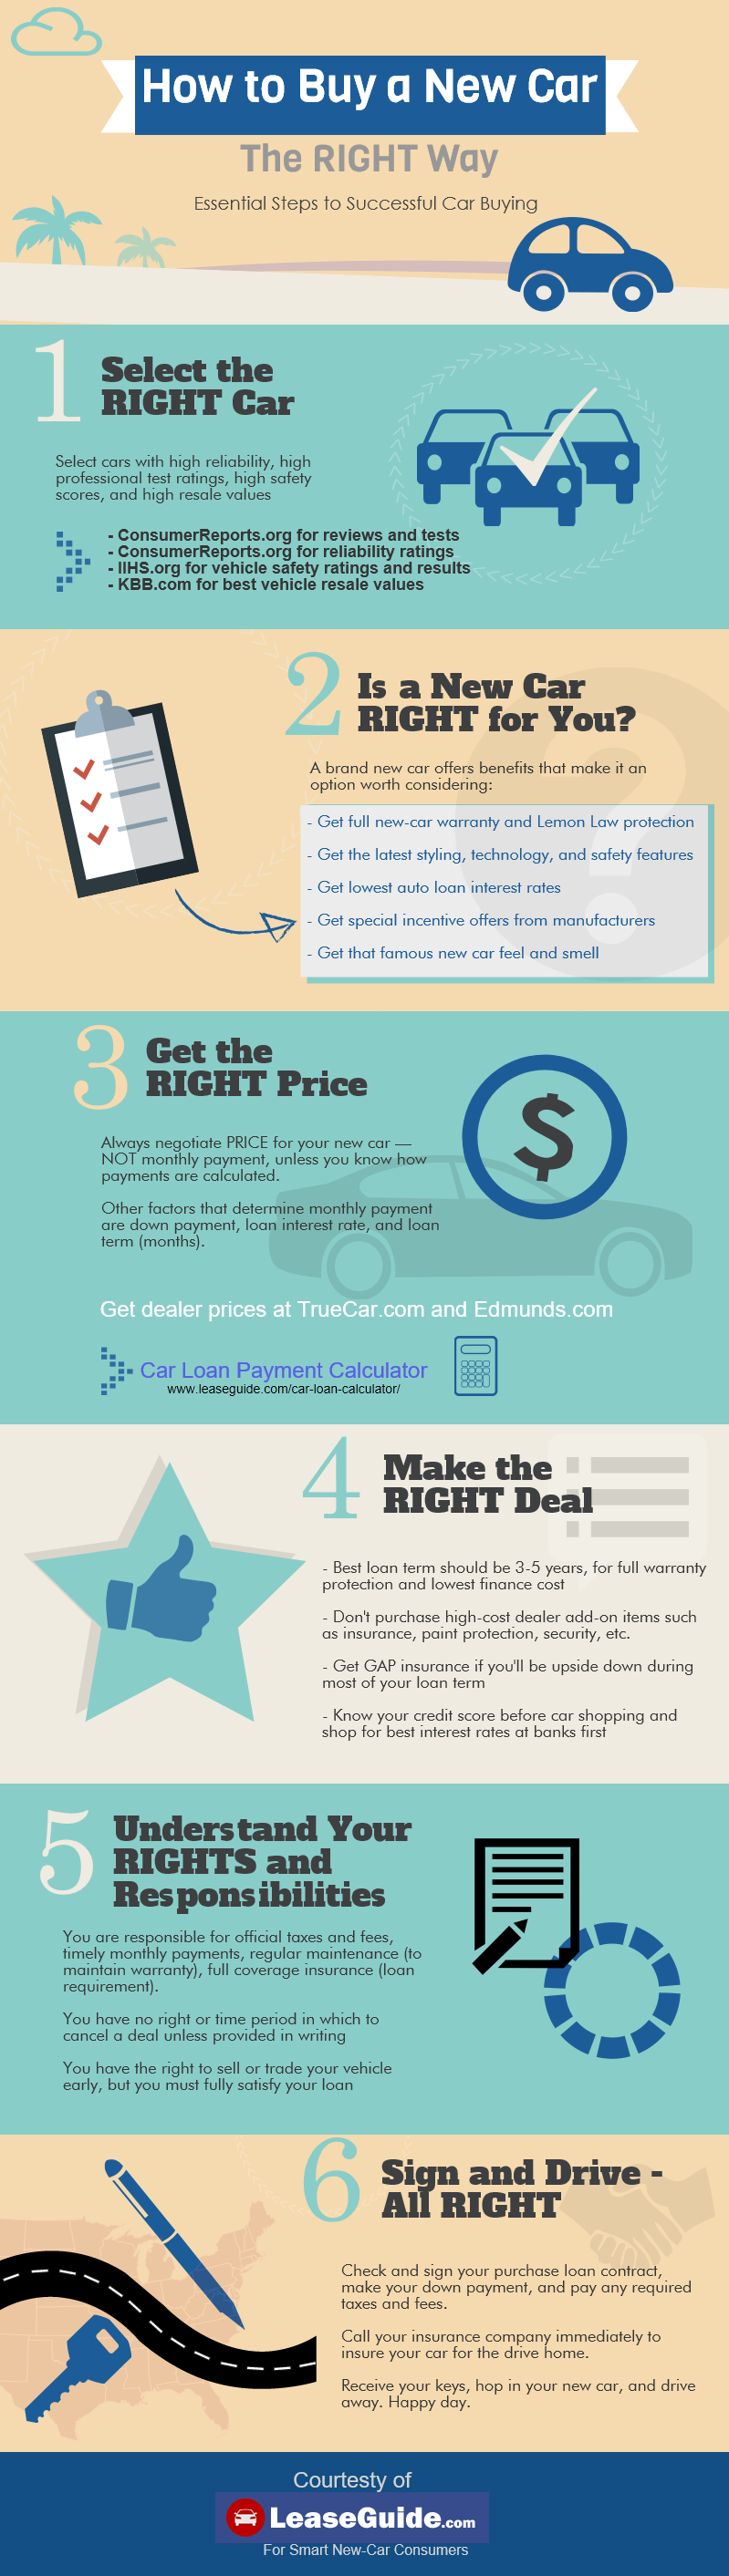 How To Buy A New Car Infographic Leaseguide Com Car Lease Car Purchase New Cars